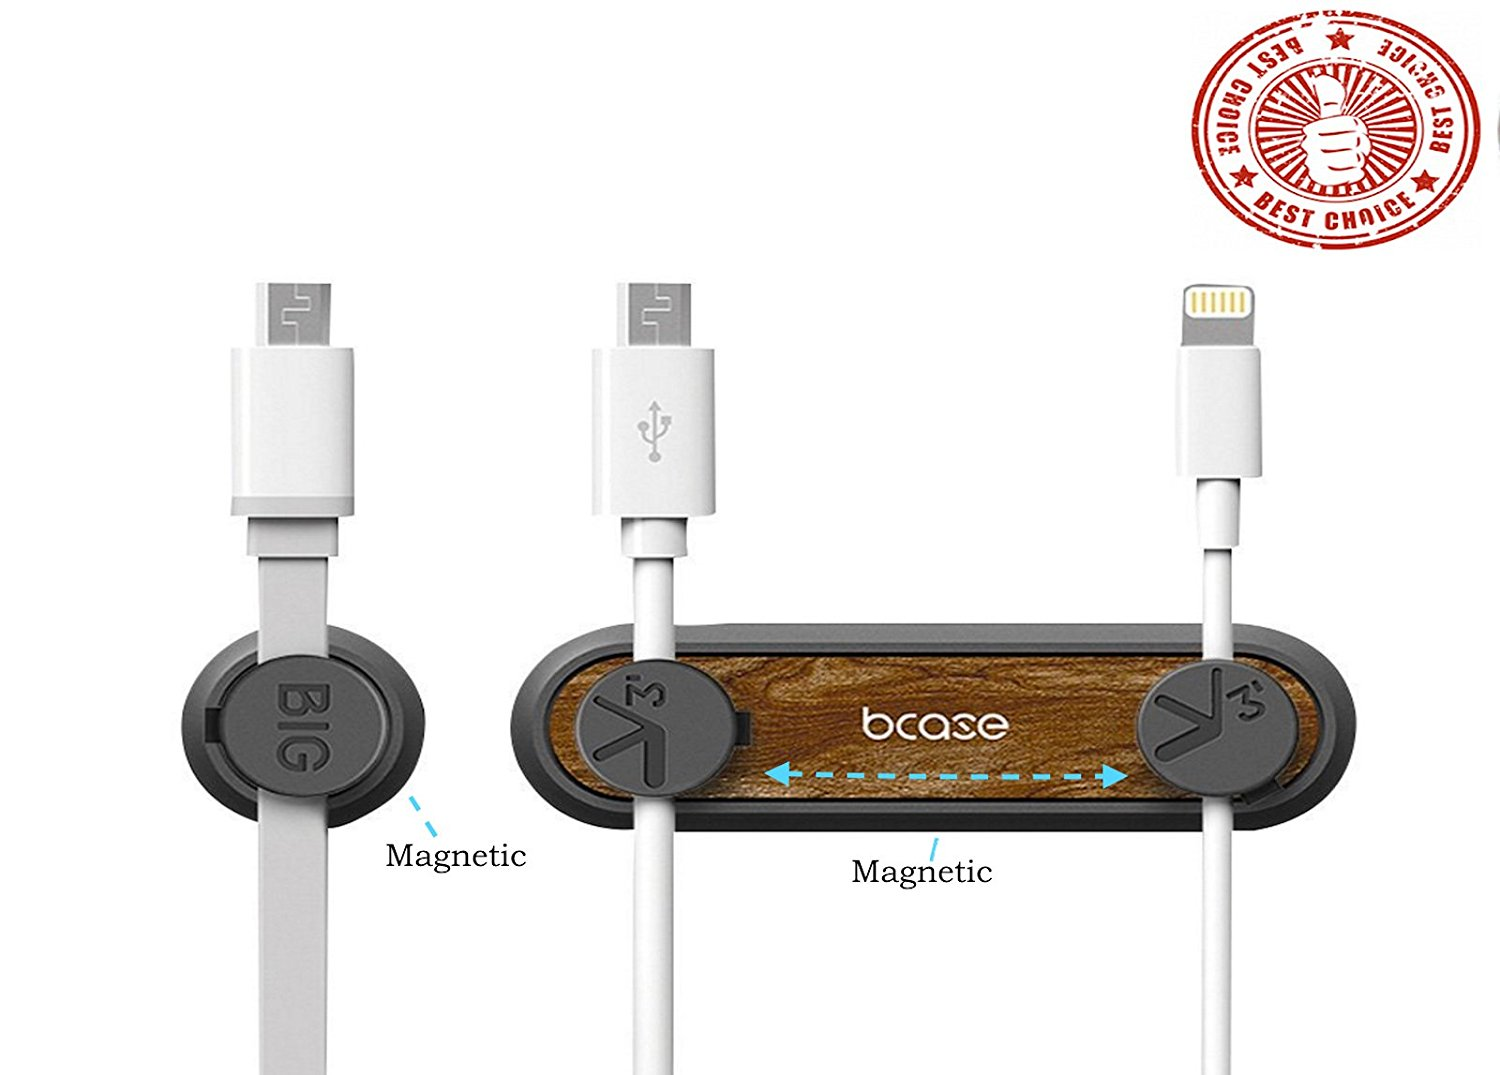 Magnetic Cable Clips, Alaxy Multipurpose Desktop Cord Management System Cable Organizer with 3 Cable Buckles & 2 Bases for Cell phone Cable, Mouse Cord . $8.99 on Amazon Prime (Image courtesy of Amazon).